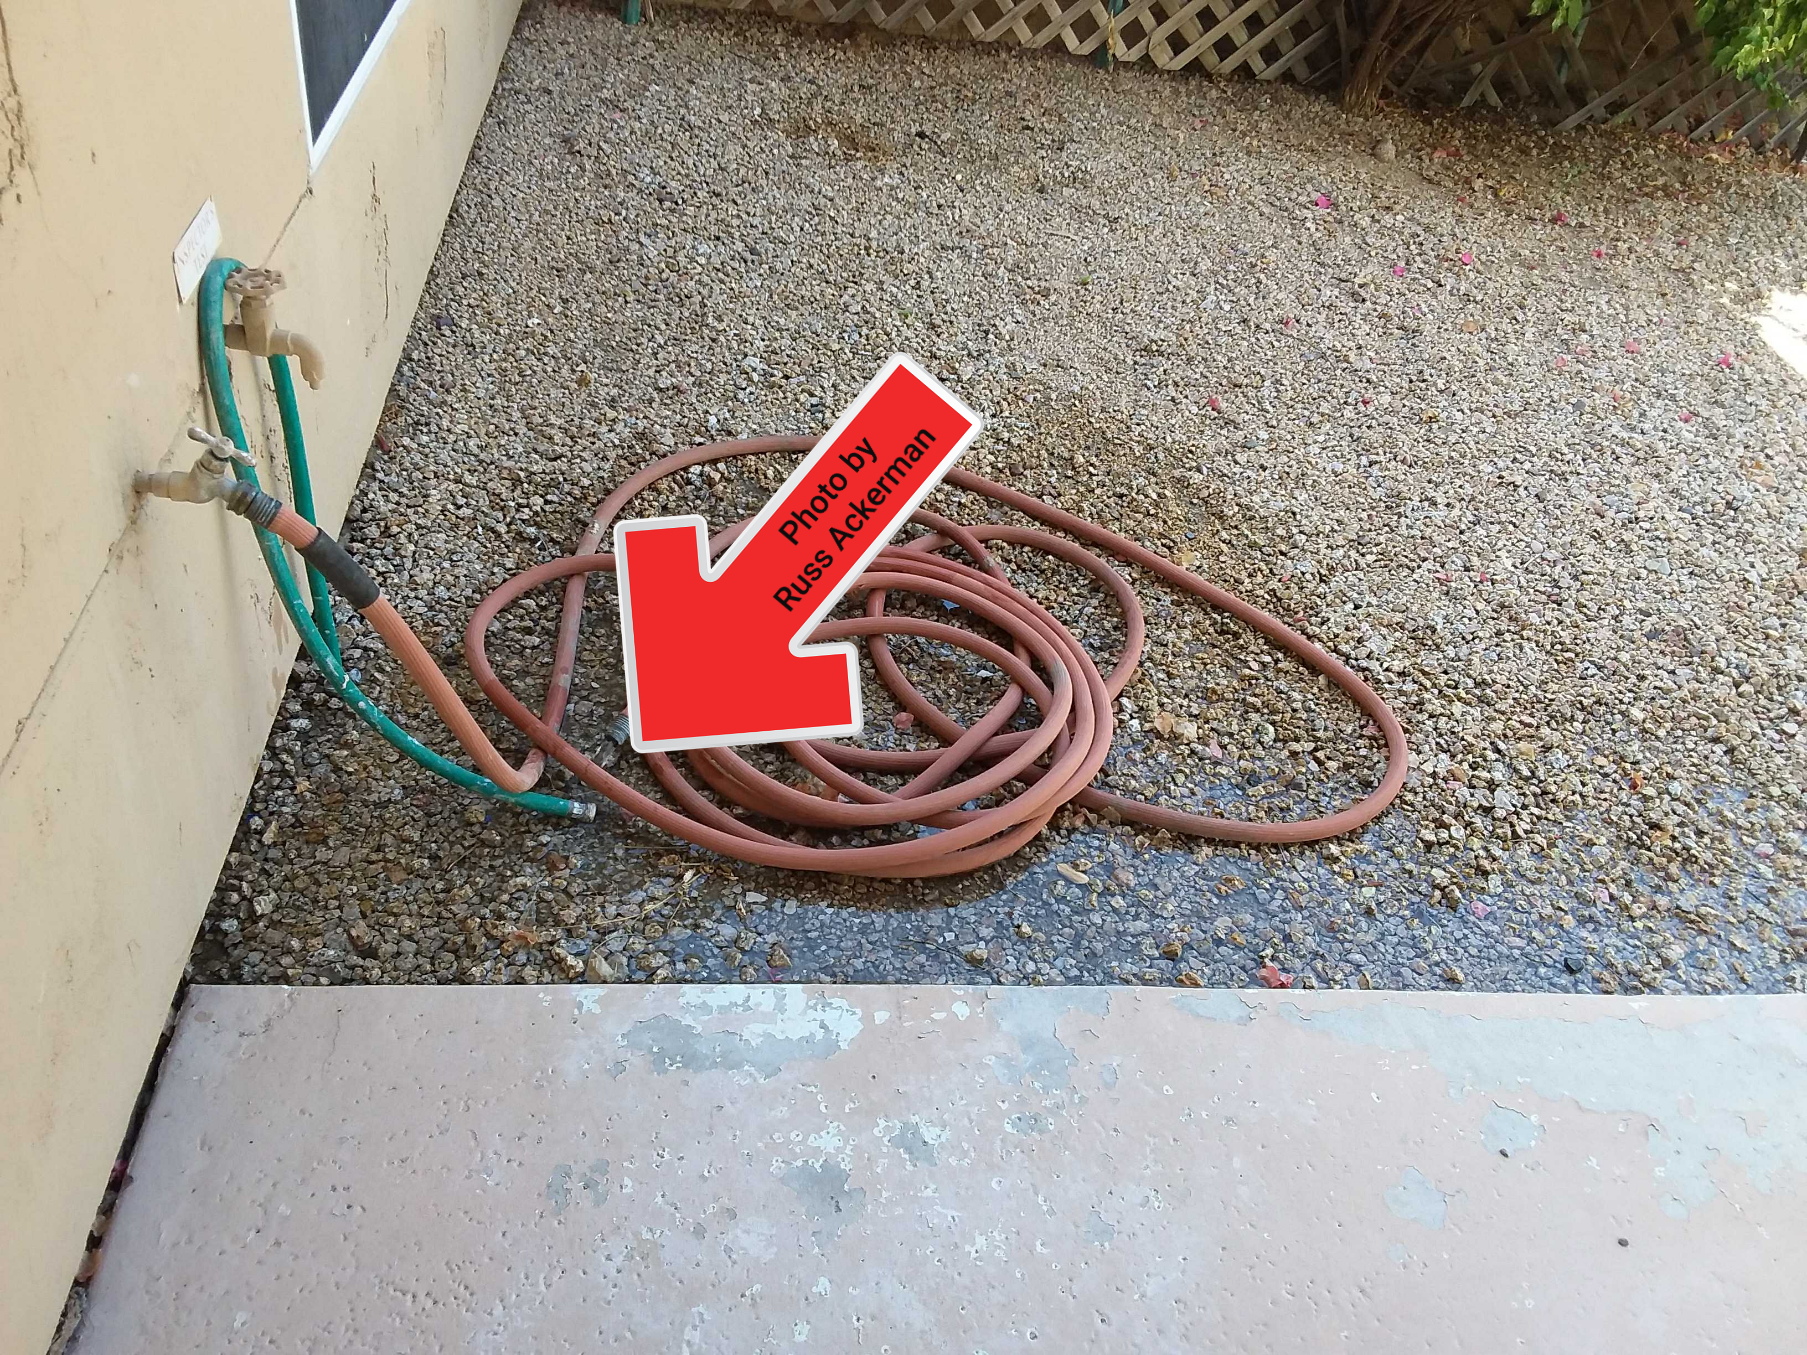 I left this garden hose on for a few minutes to show how the grading could be improved to keep water from pooling near the foundation and patio.